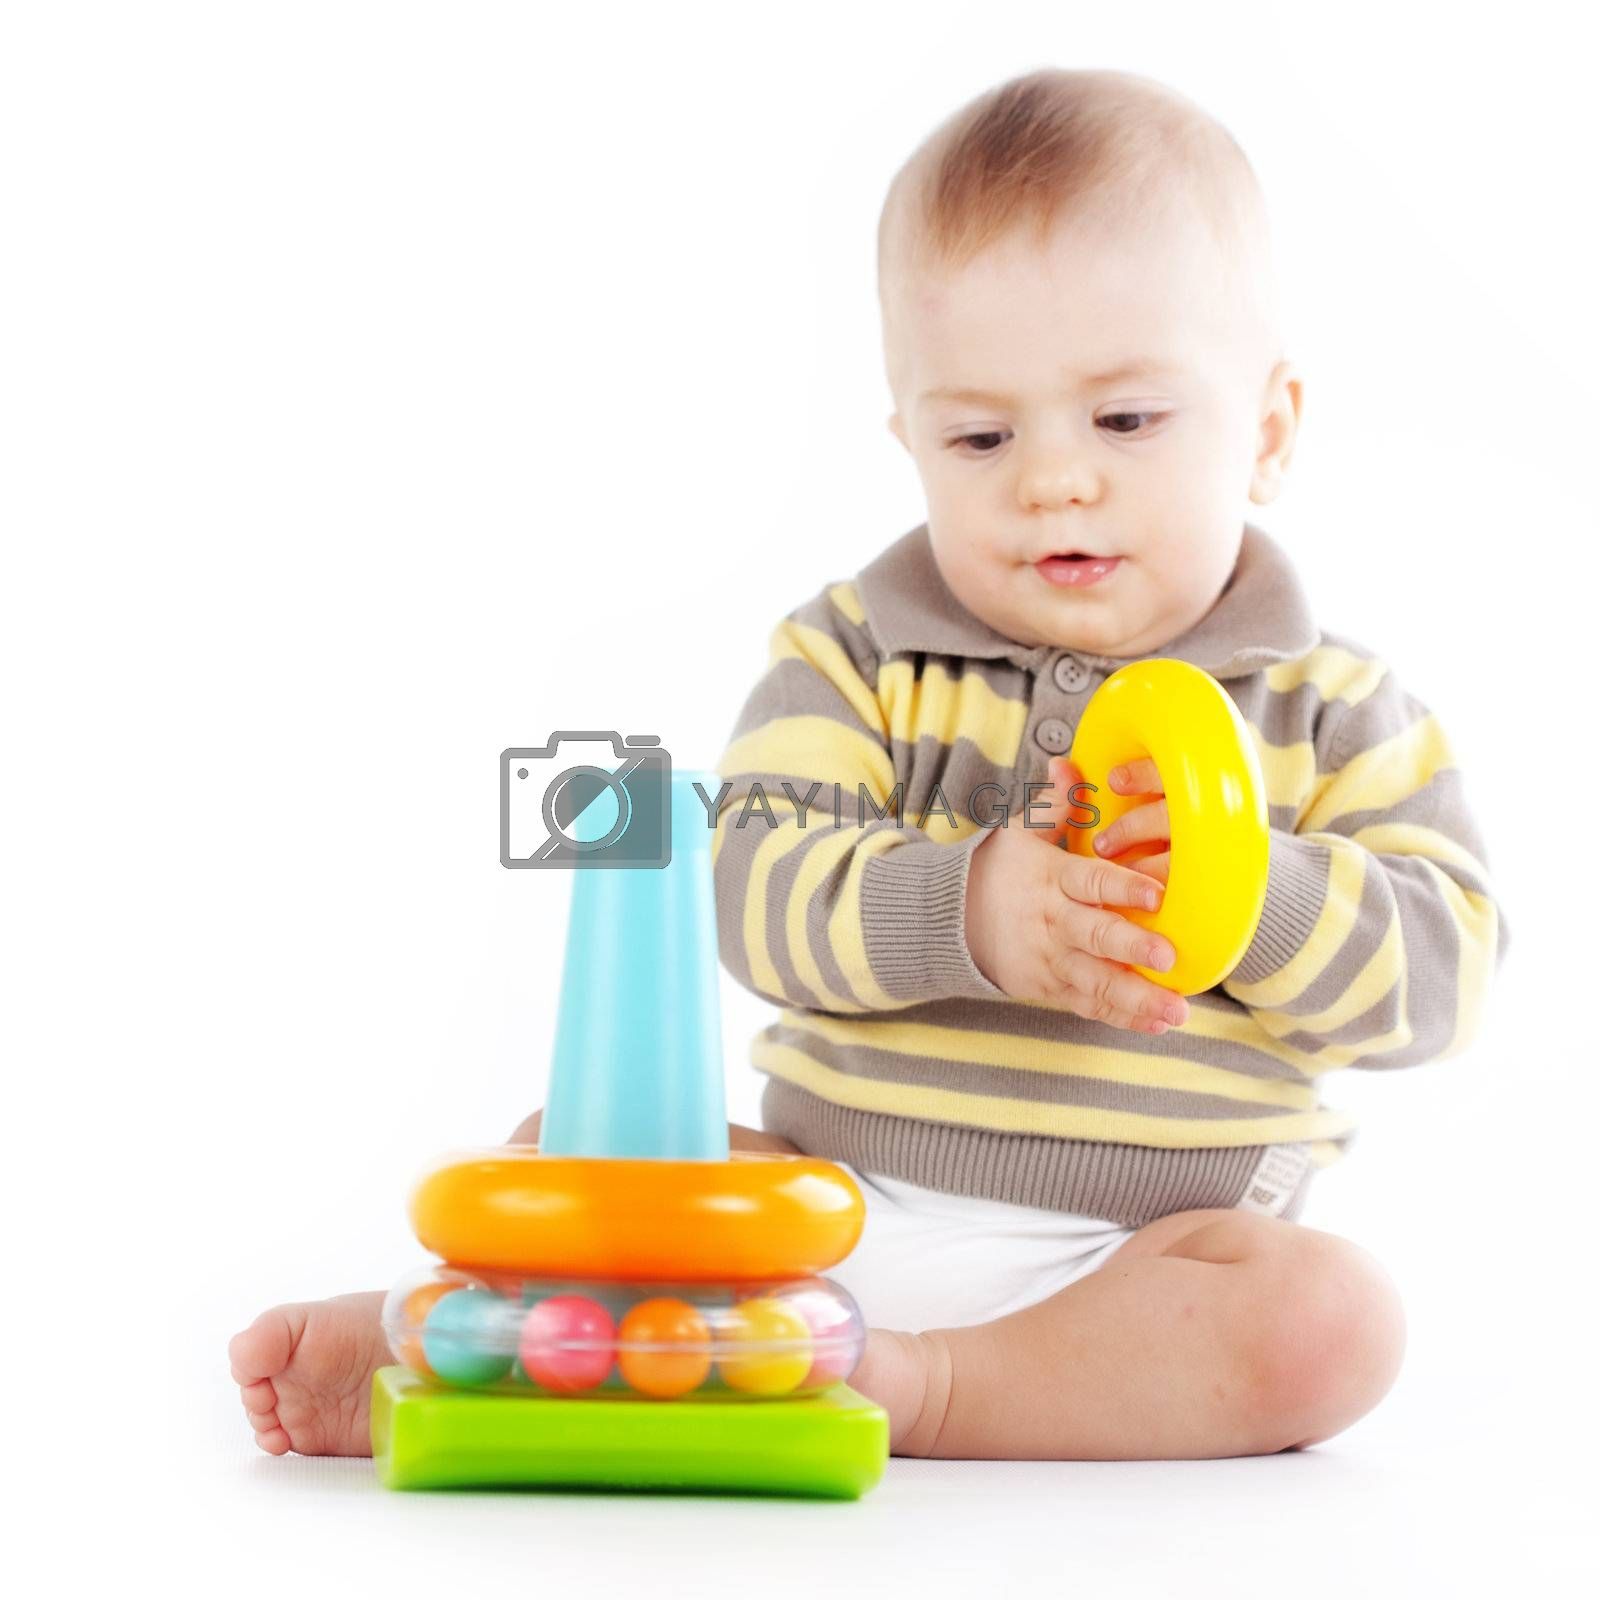 Baby playing with toys isolated on white